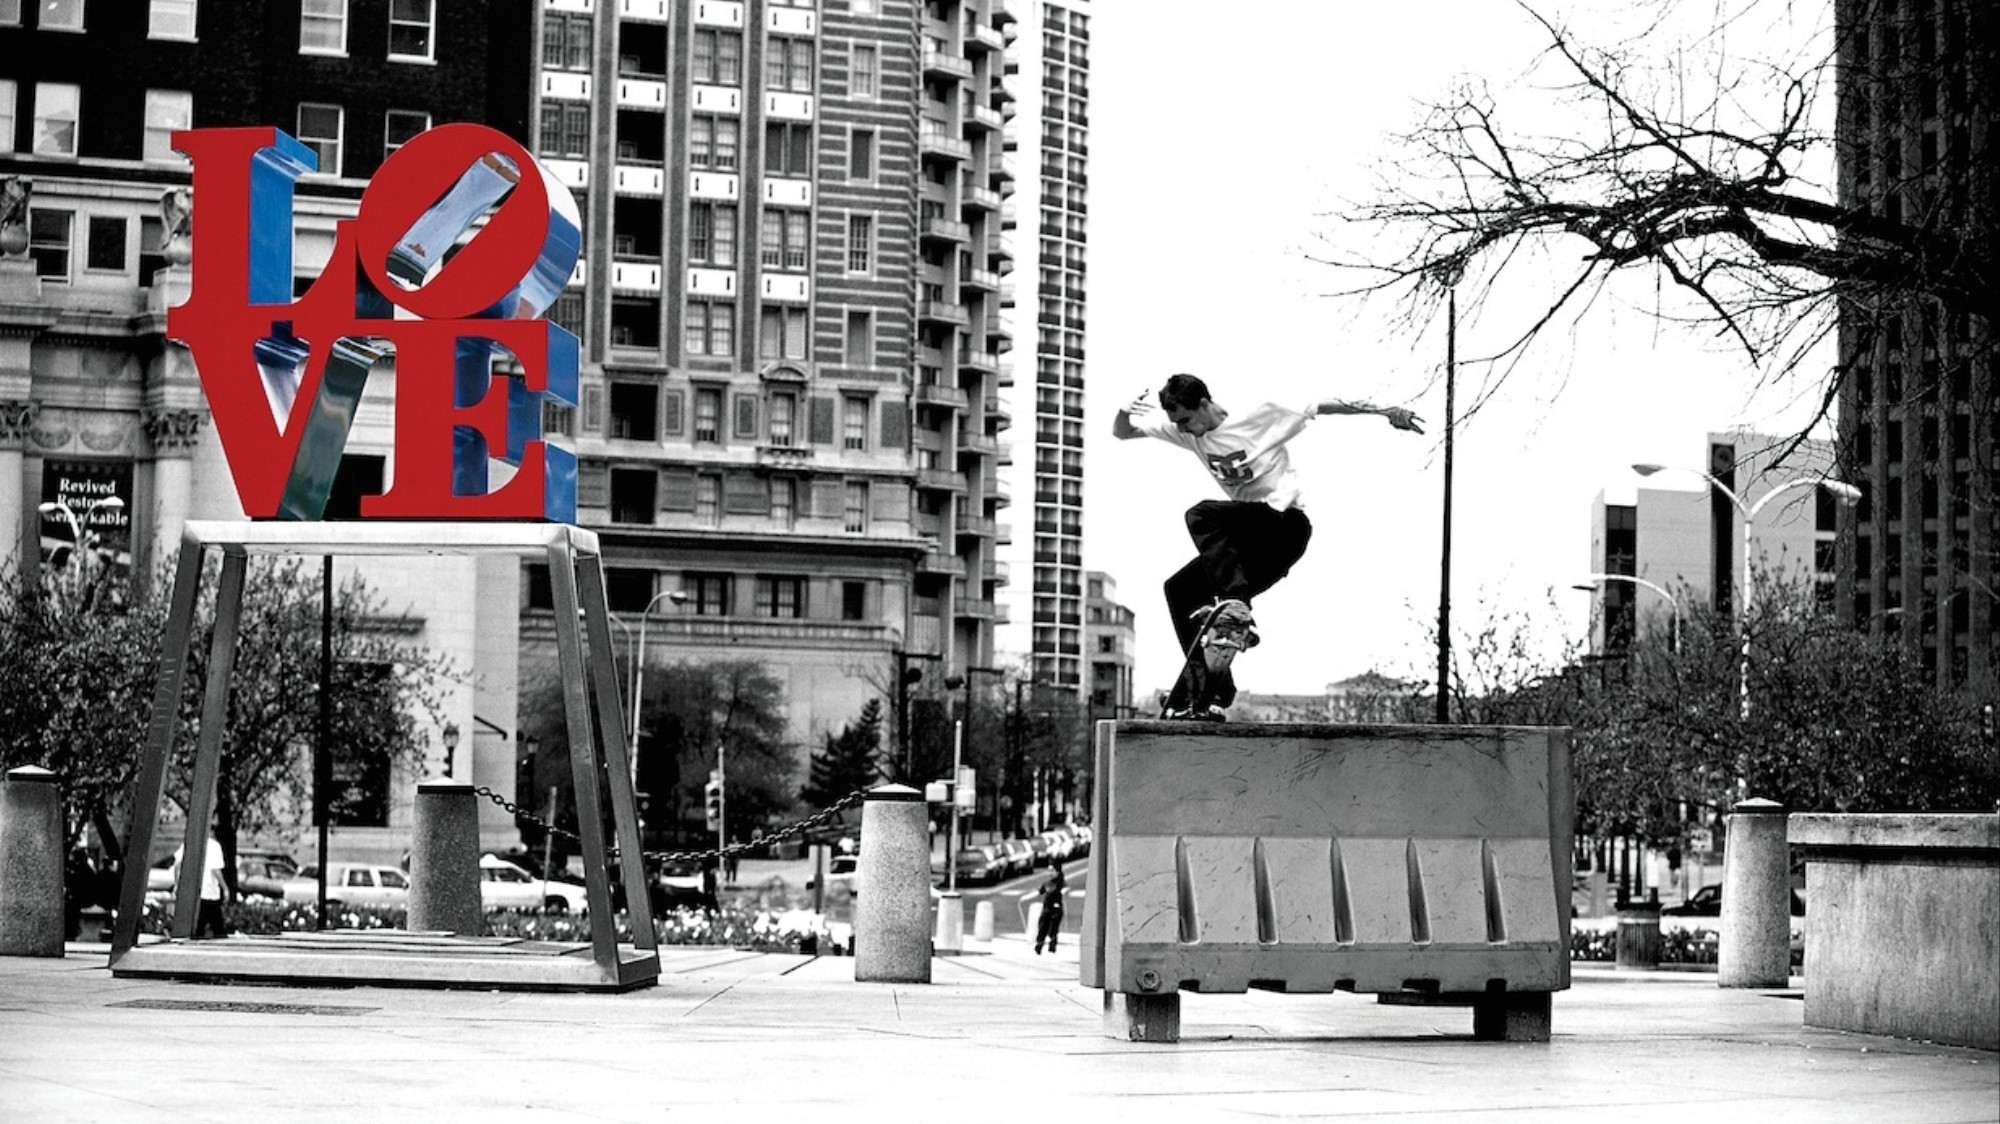 Josh Kalis NoseBlunt LOVE Park by Blabac Photo